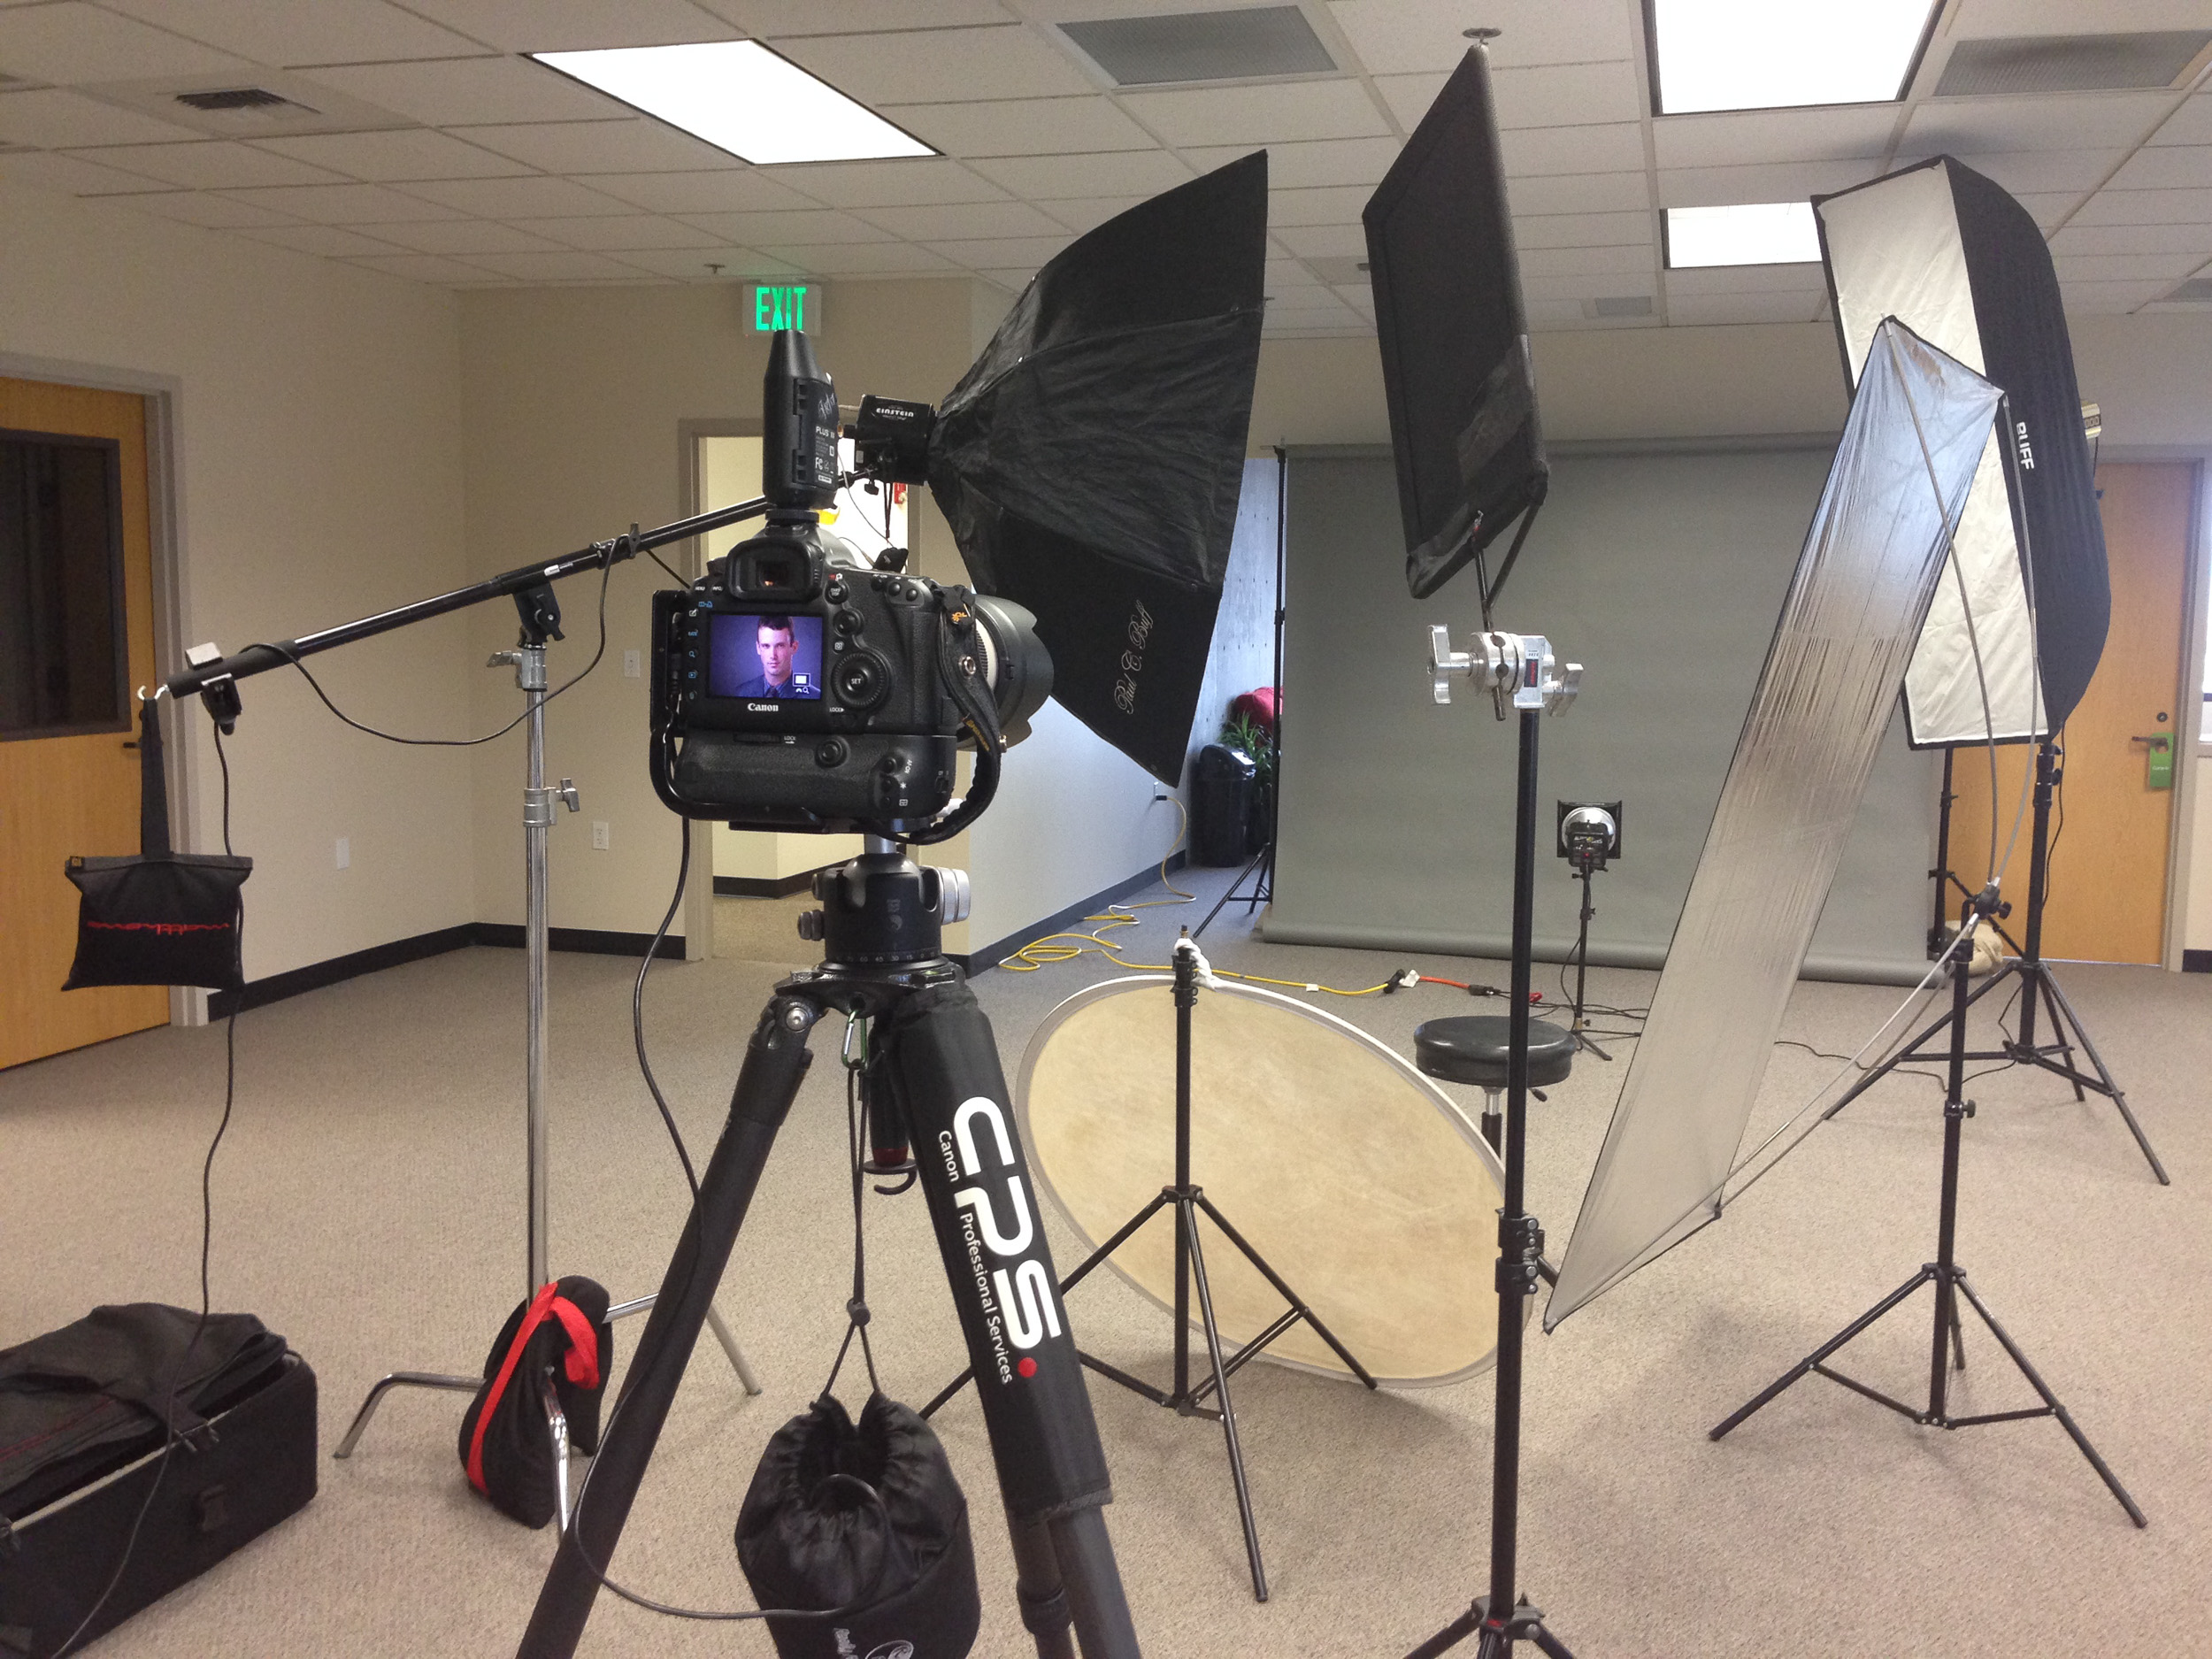 BTS (behind the scenes) look at our Executive Portrait setup